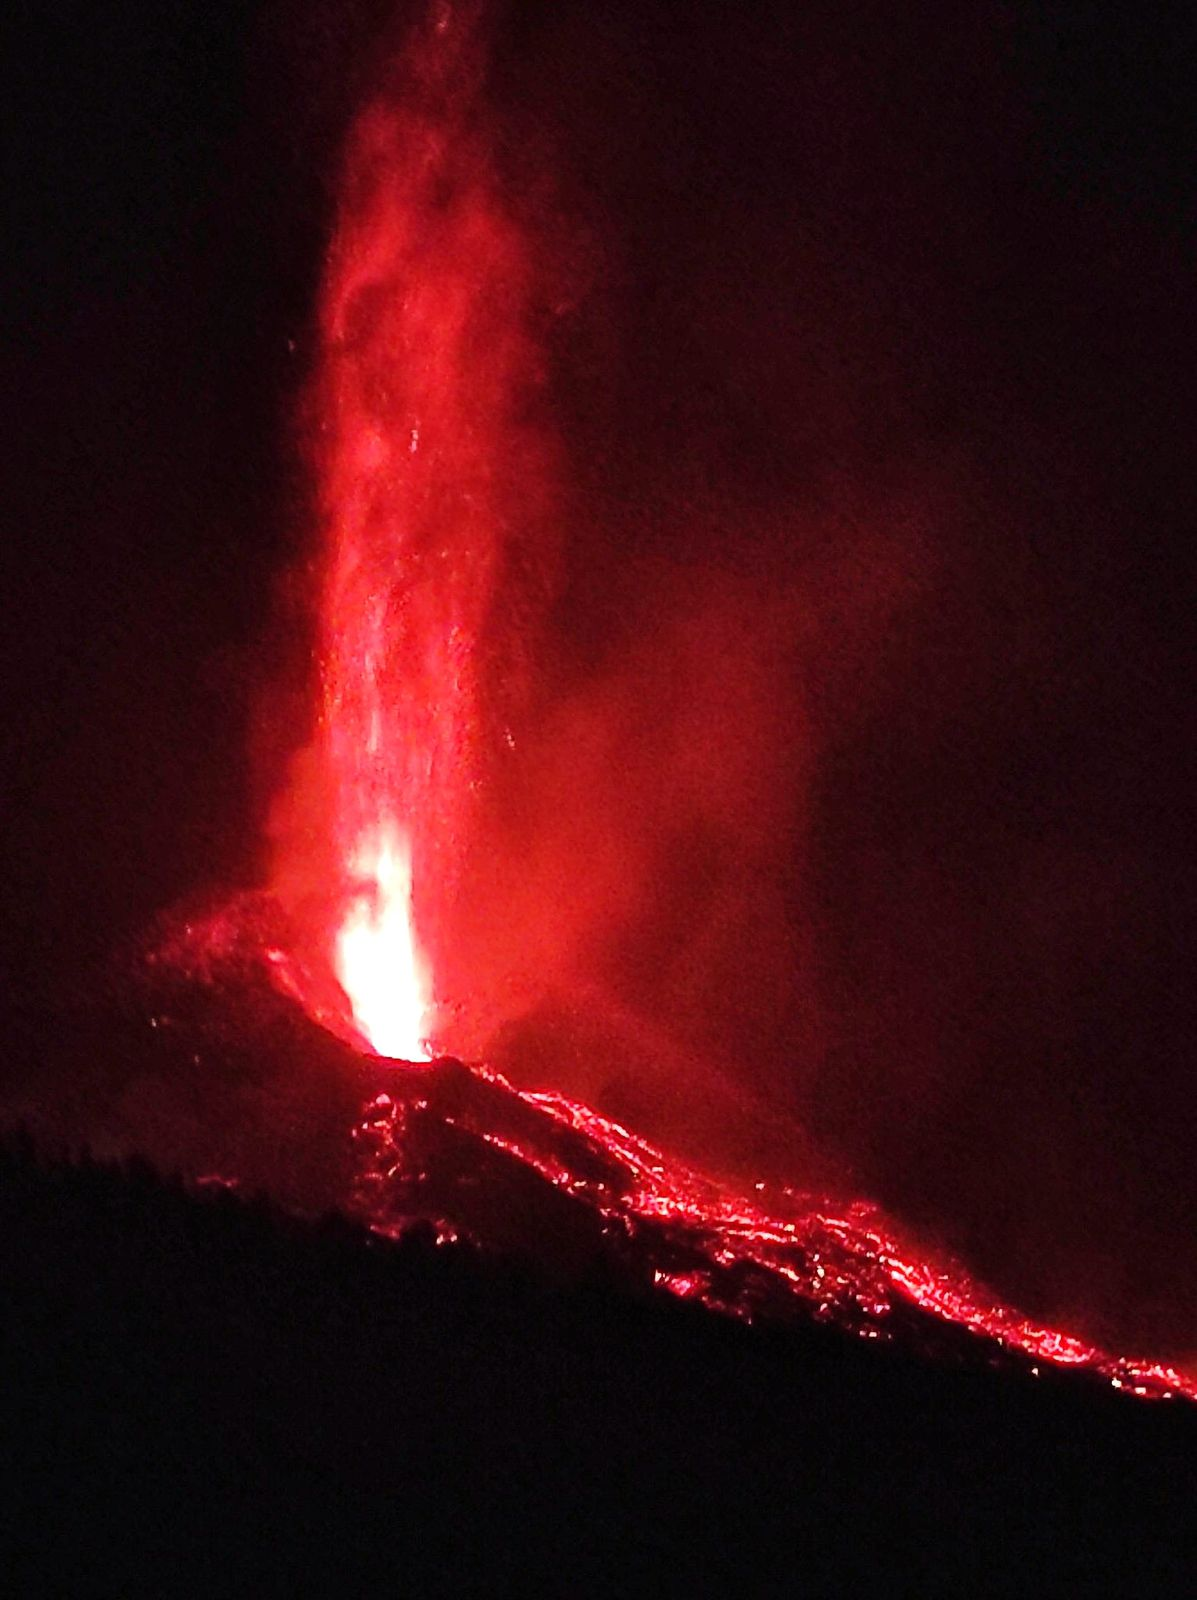 La Palma / Cumbre Vieja - the fountain reaches 600-700 m. on 04.10.2021 / 12:05 am - photo of the Canarias volcanoes